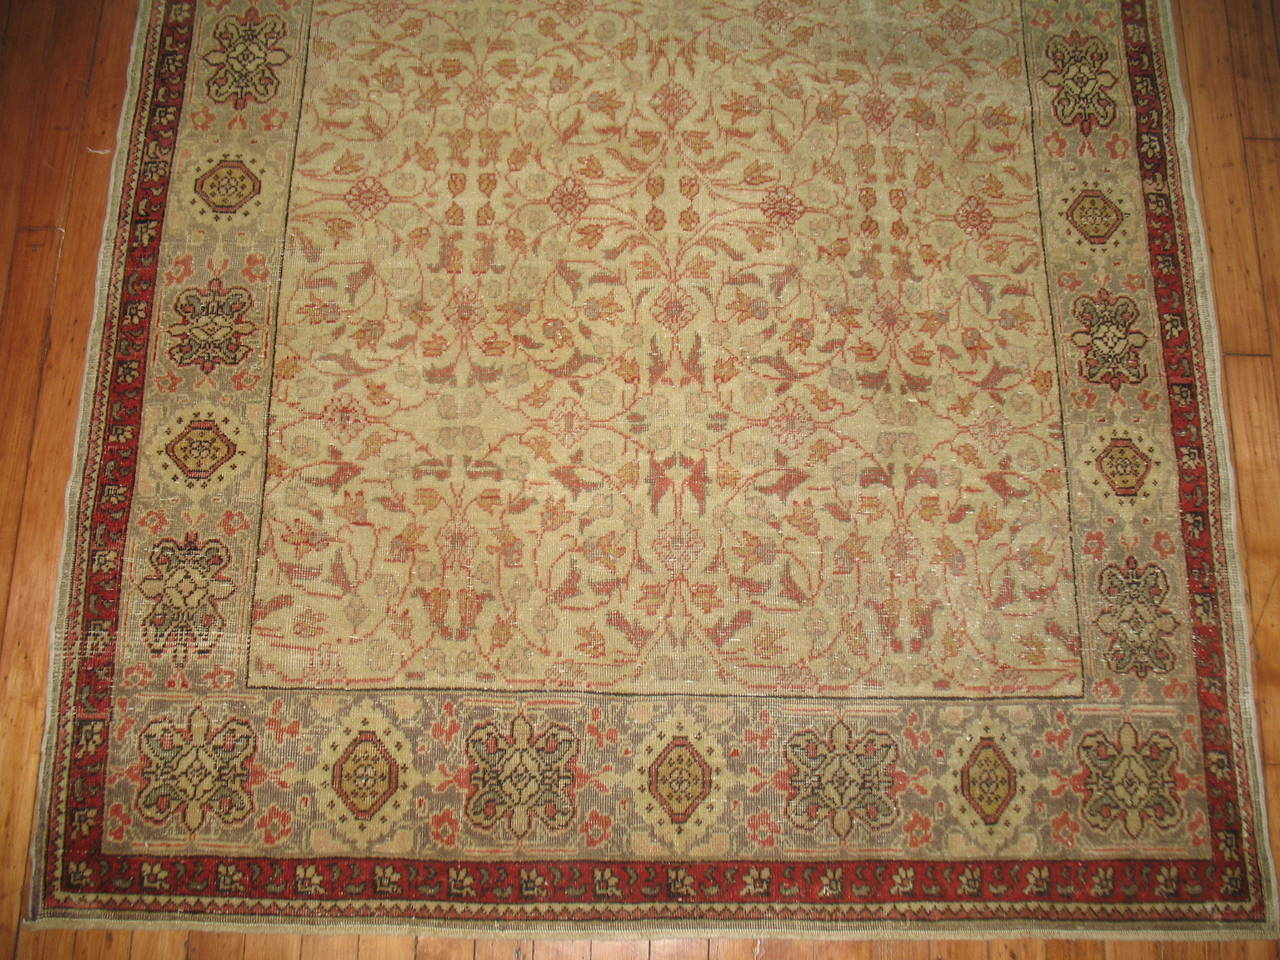 Early 20th century all-over motif Turkish Sivas.